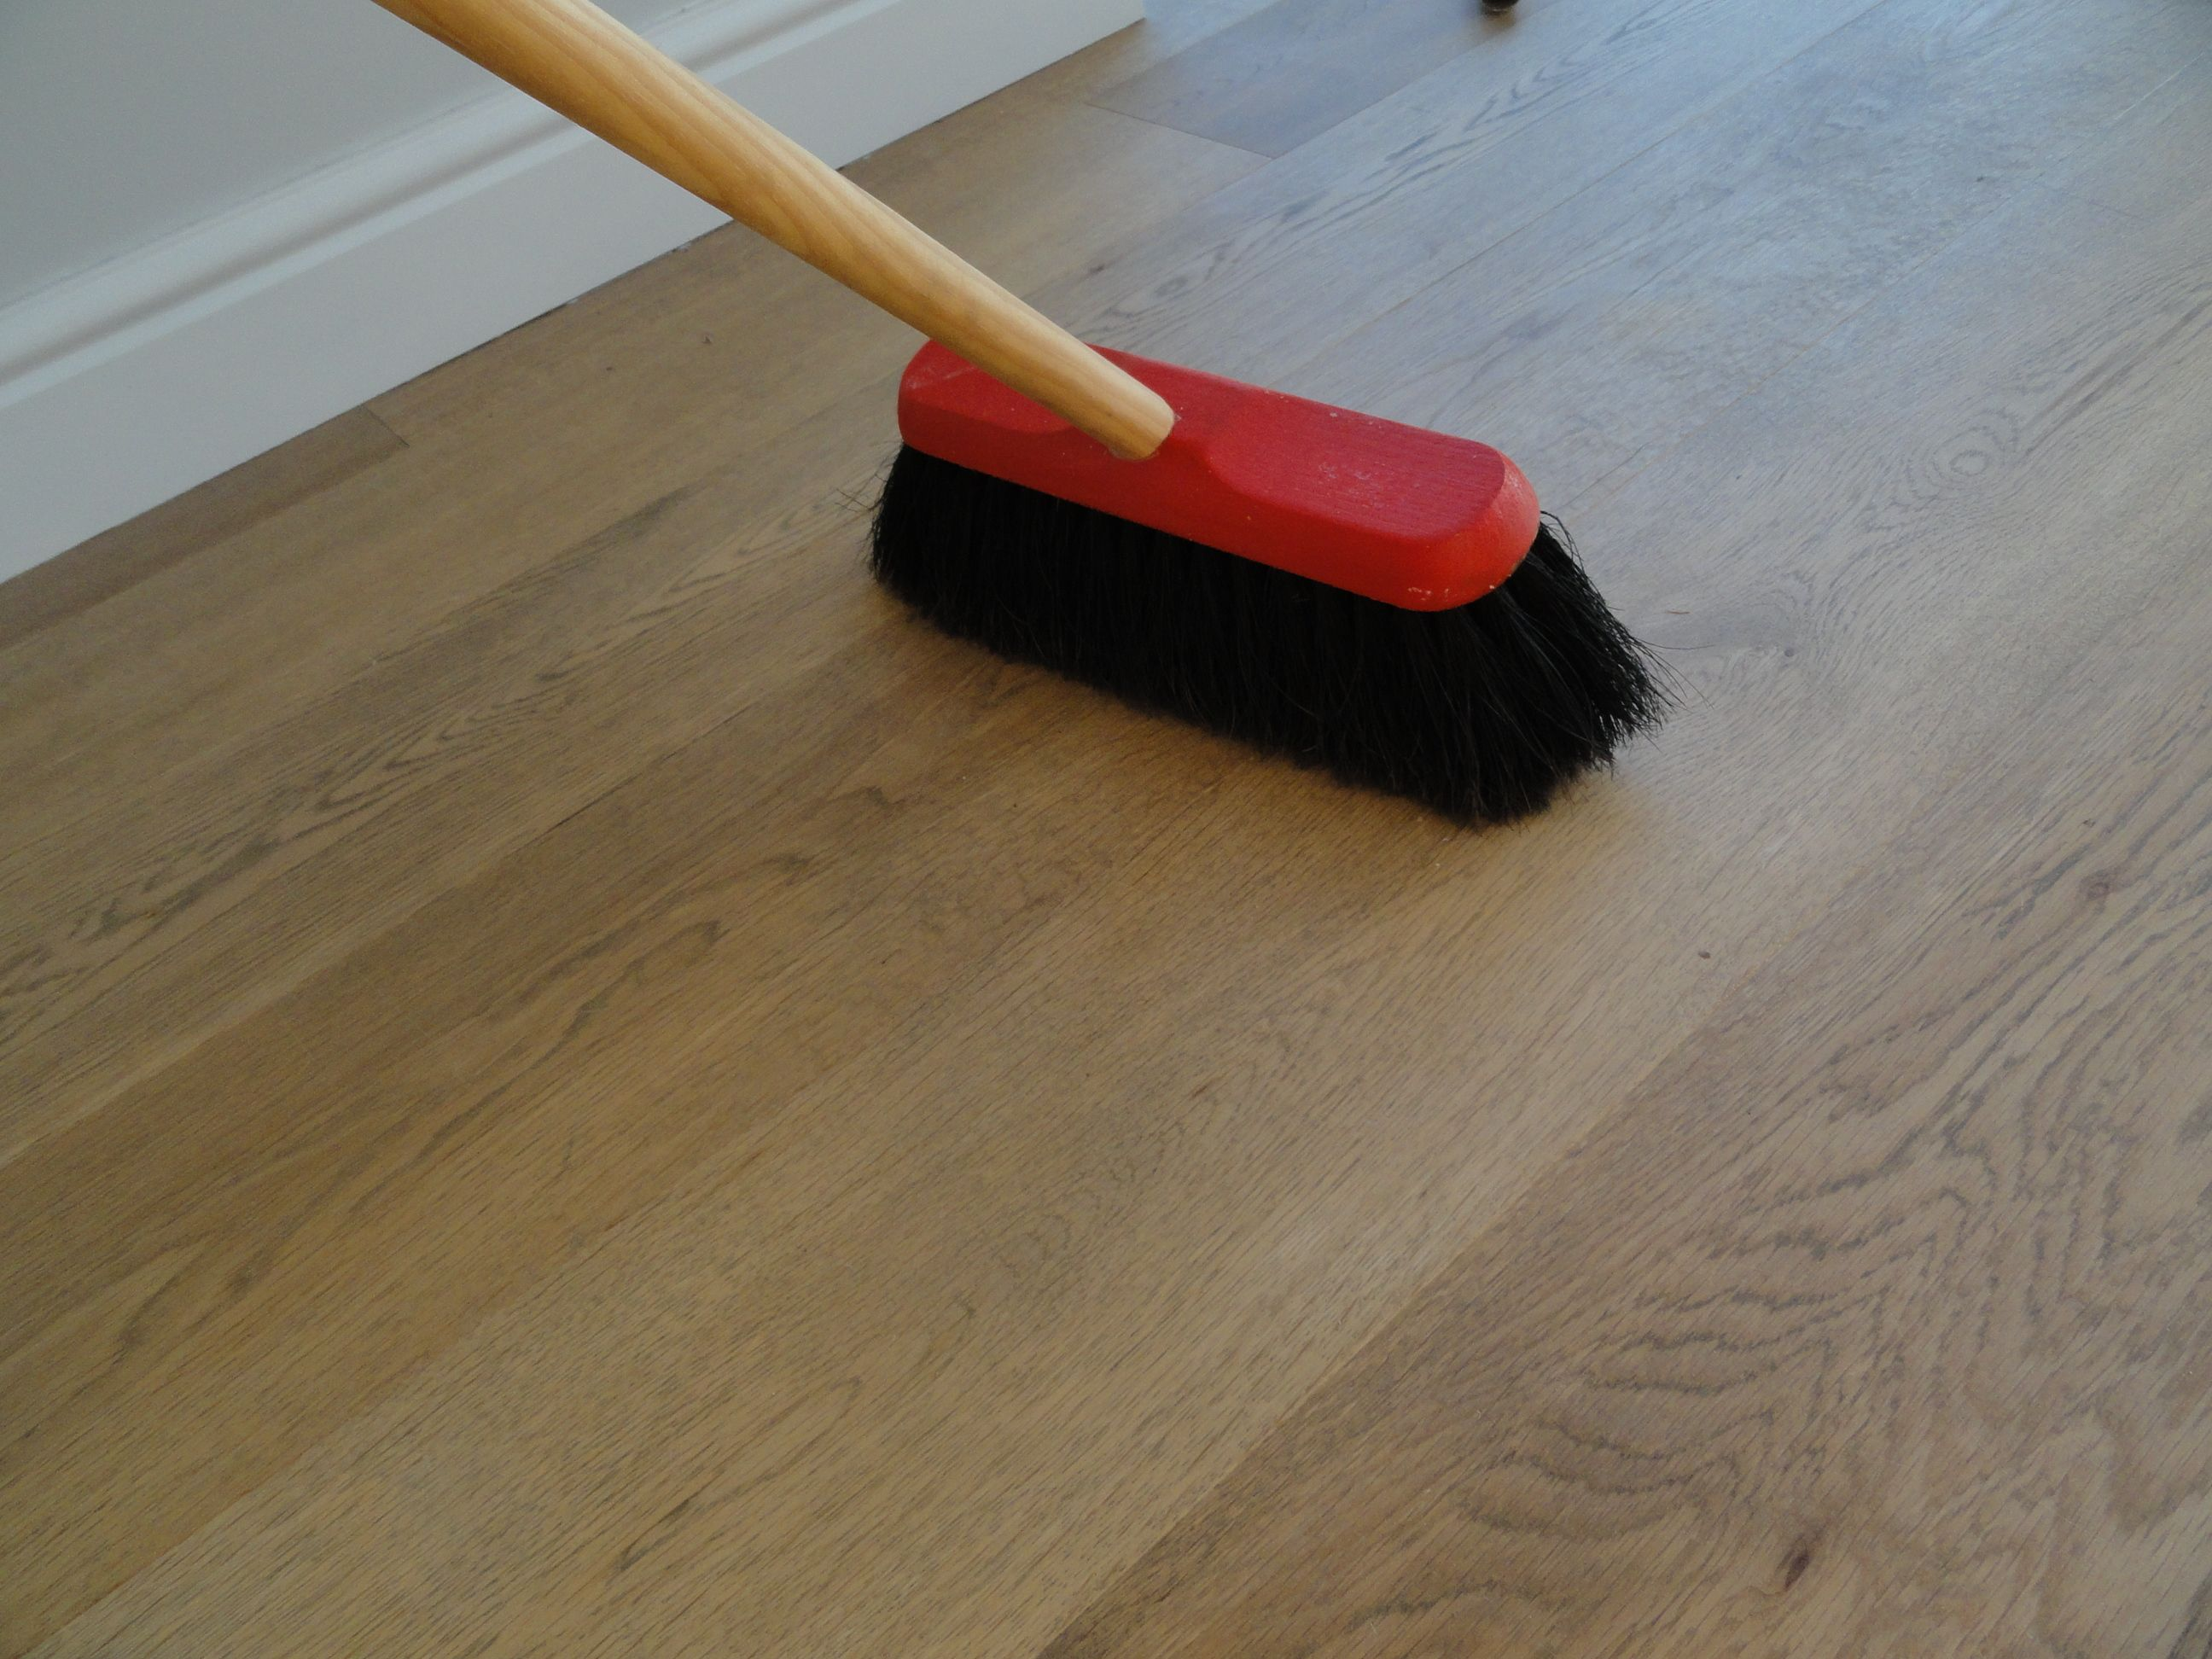 How To Clean Bamboo Flooring Advice And Guidance On Cleaning Floors Www Bambooflooringcompany